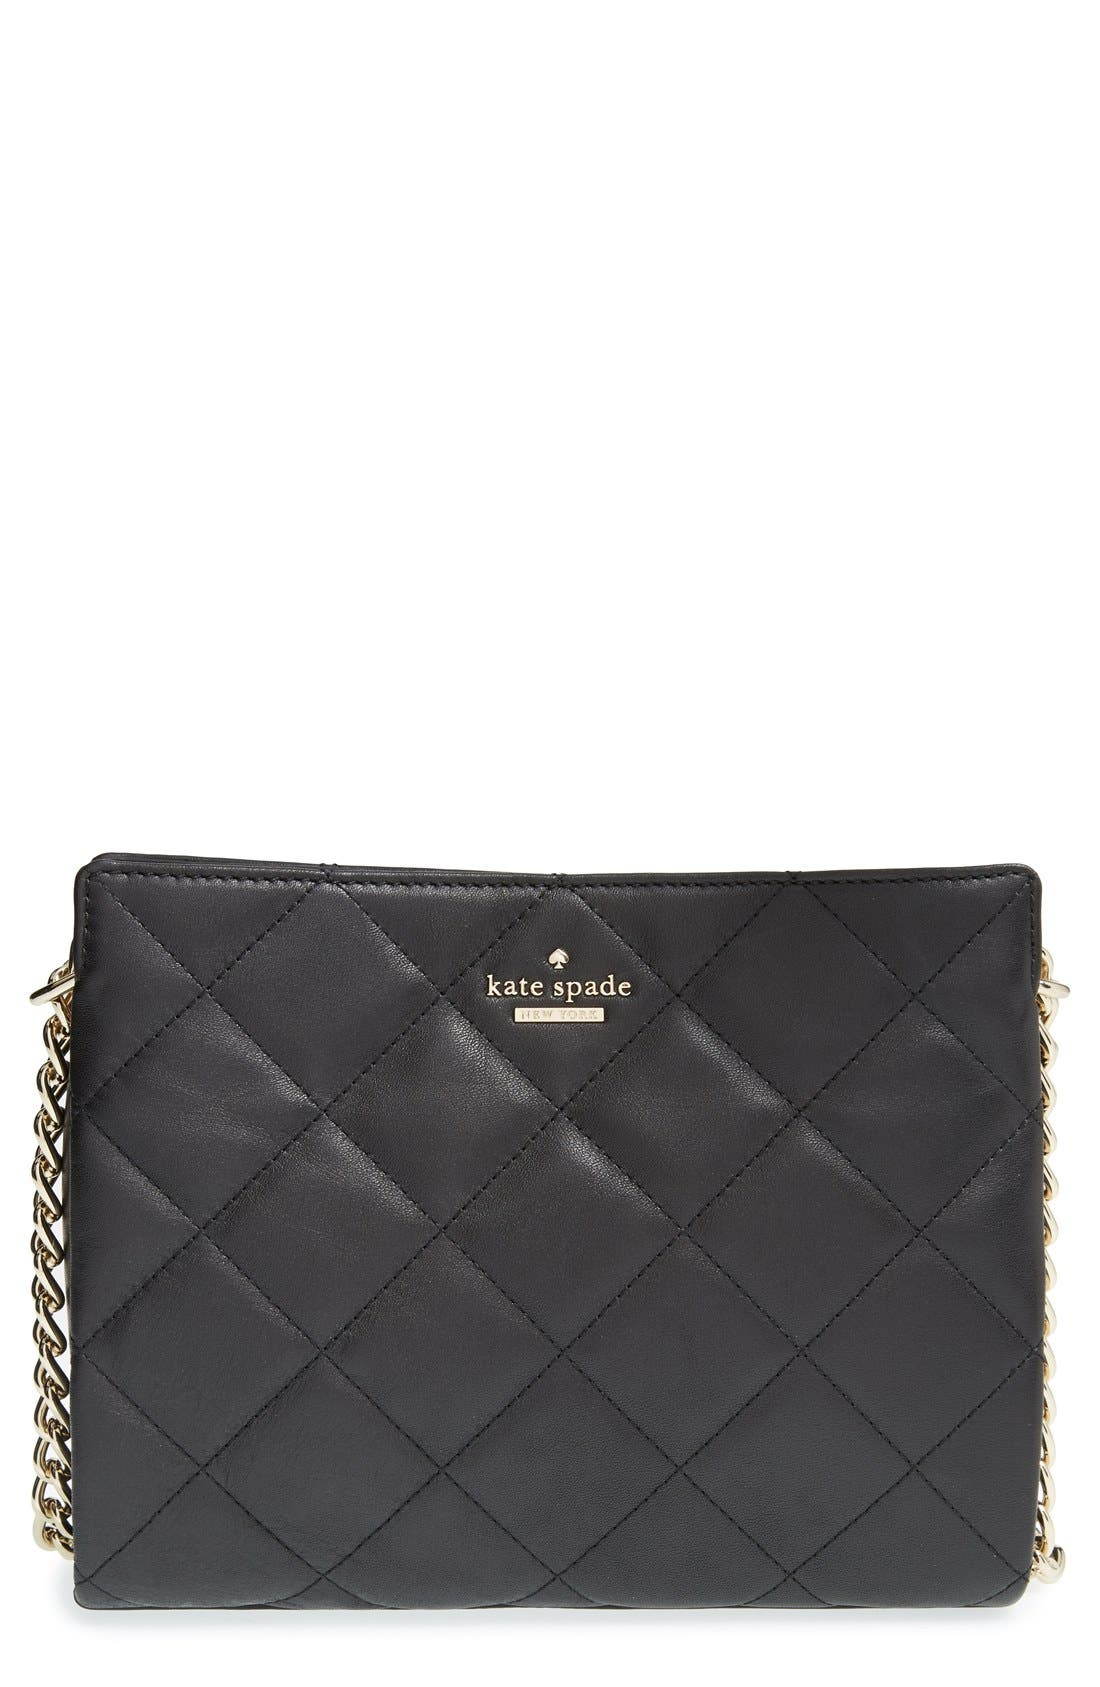 KATE SPADE NEW YORK emerson place - mini convertible phoebe quilted leather shoulder bag